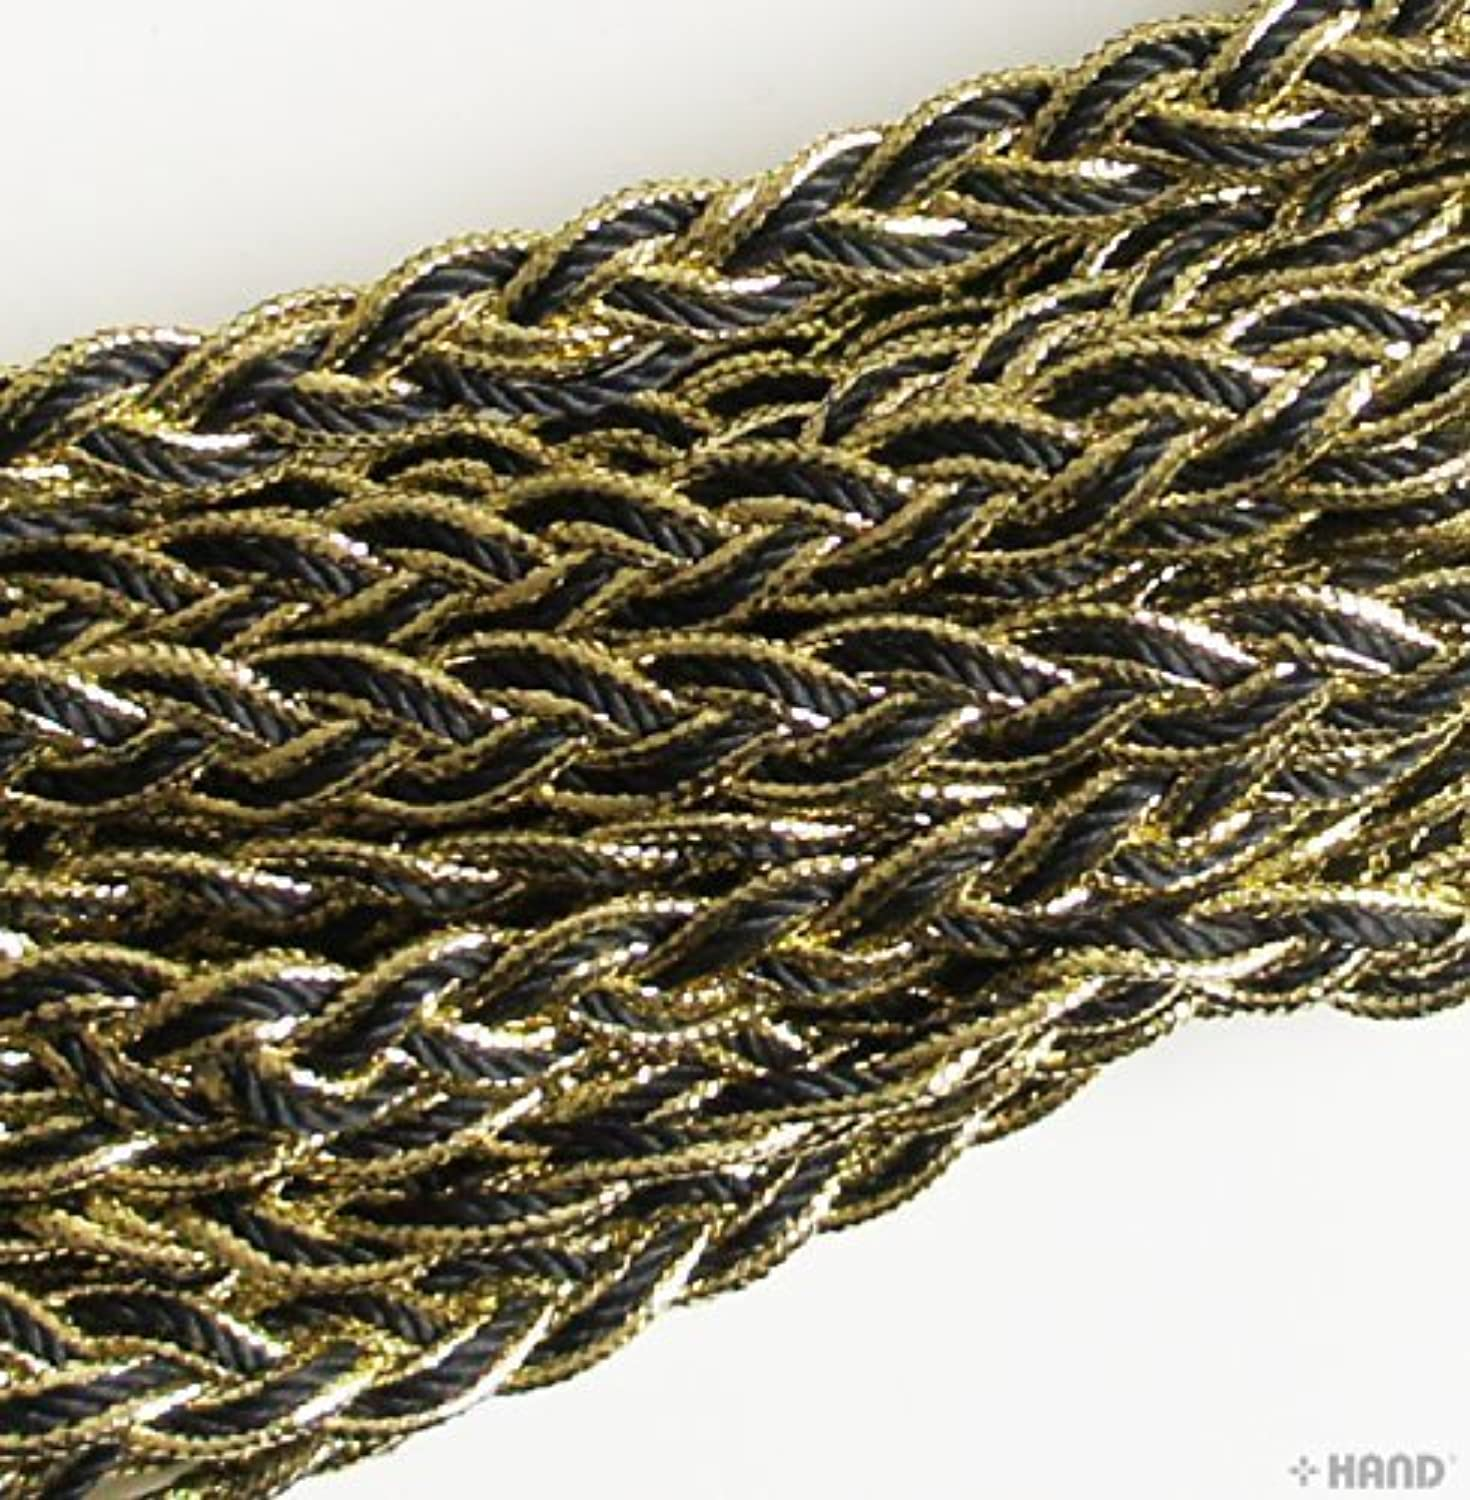 BRT03 Black and gold Twisted Plait Trim - 12mm wide x appx 10 meters